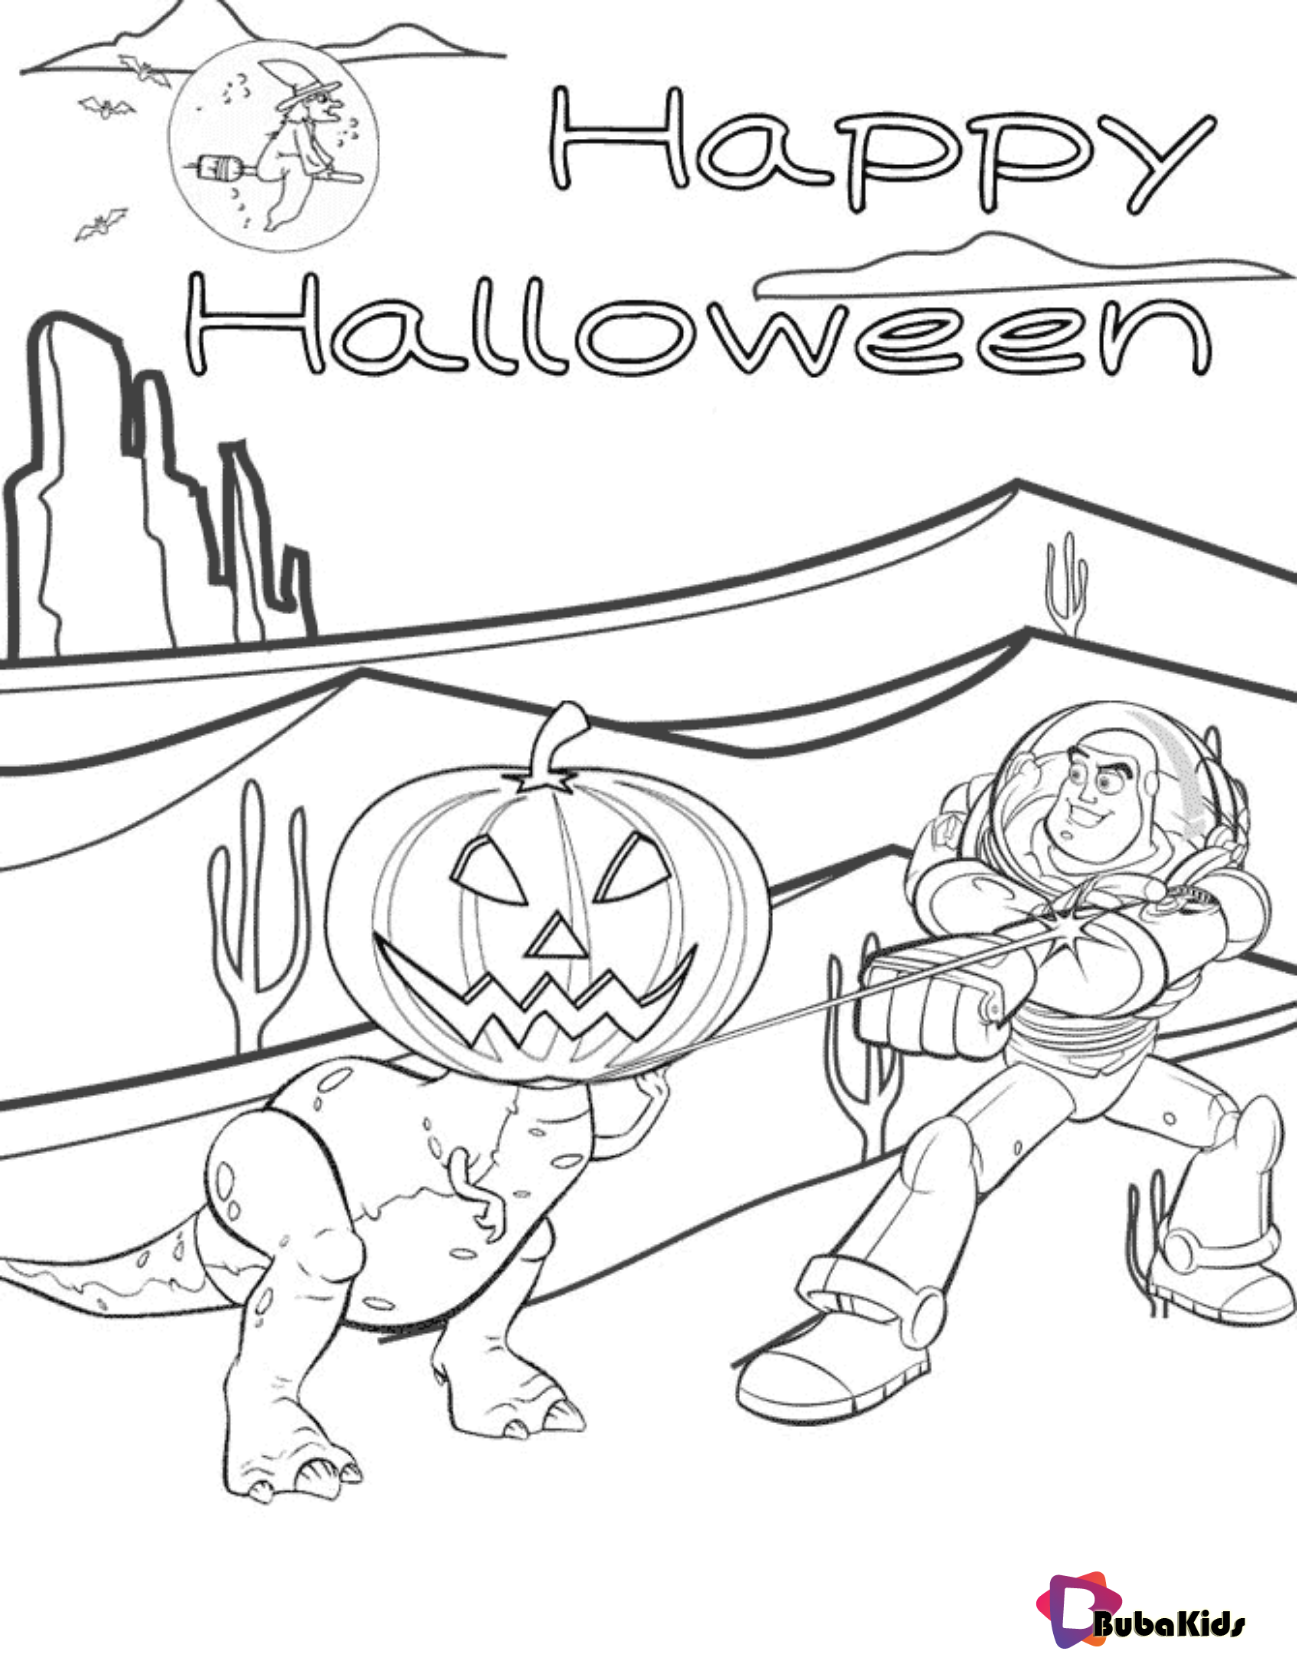 Toy Story 4 Rex and Buzz Lightyear Halloween coloring page ...